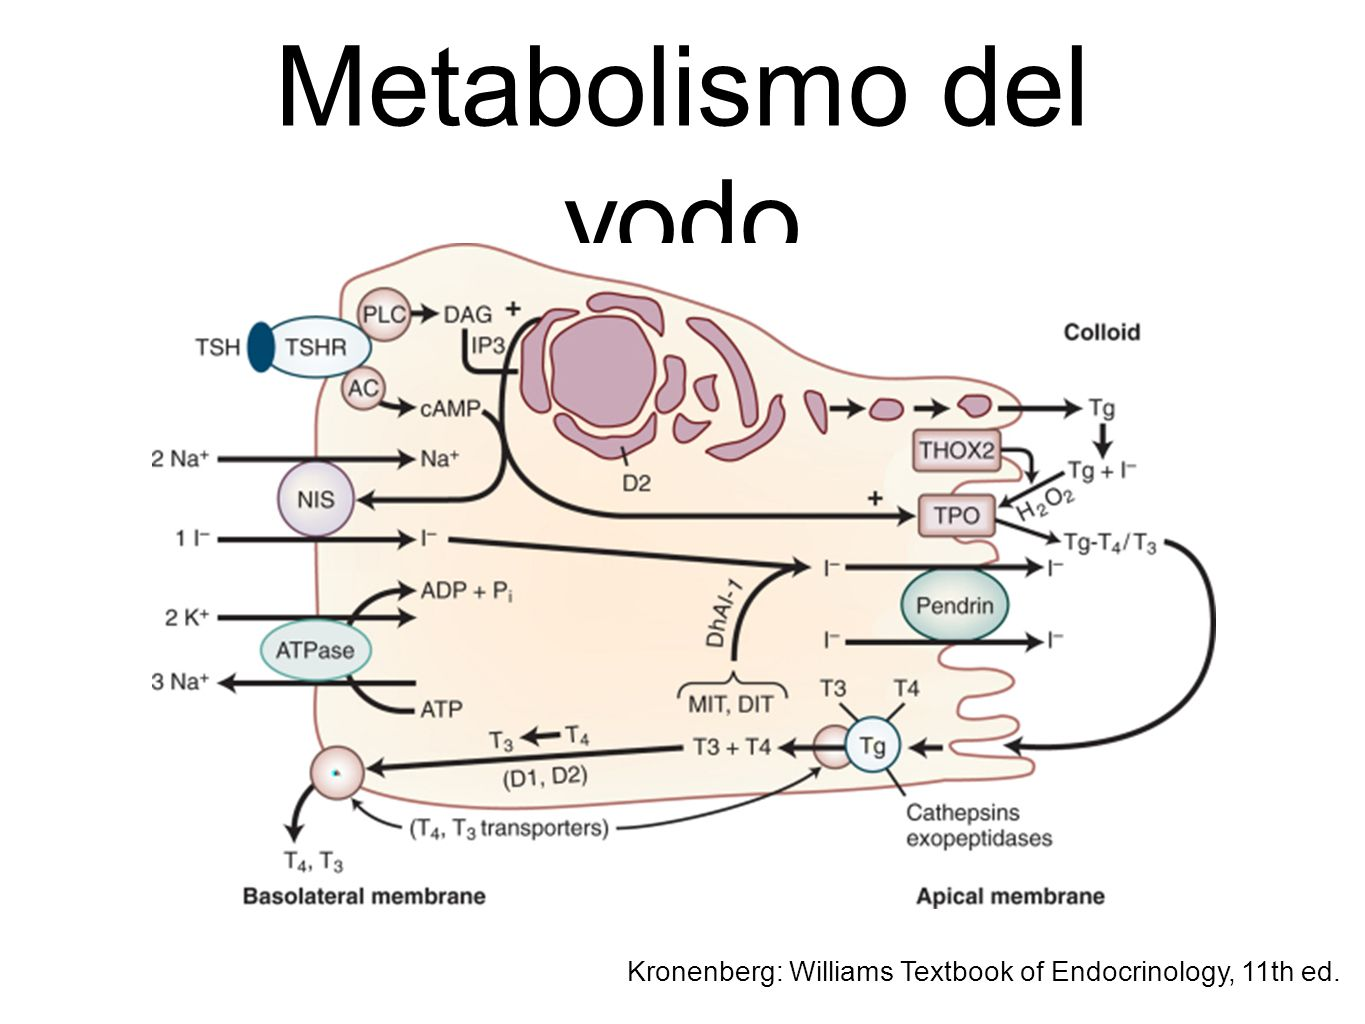 Metabolismo del yodo Kronenberg: Williams Textbook of Endocrinology, 11th ed.